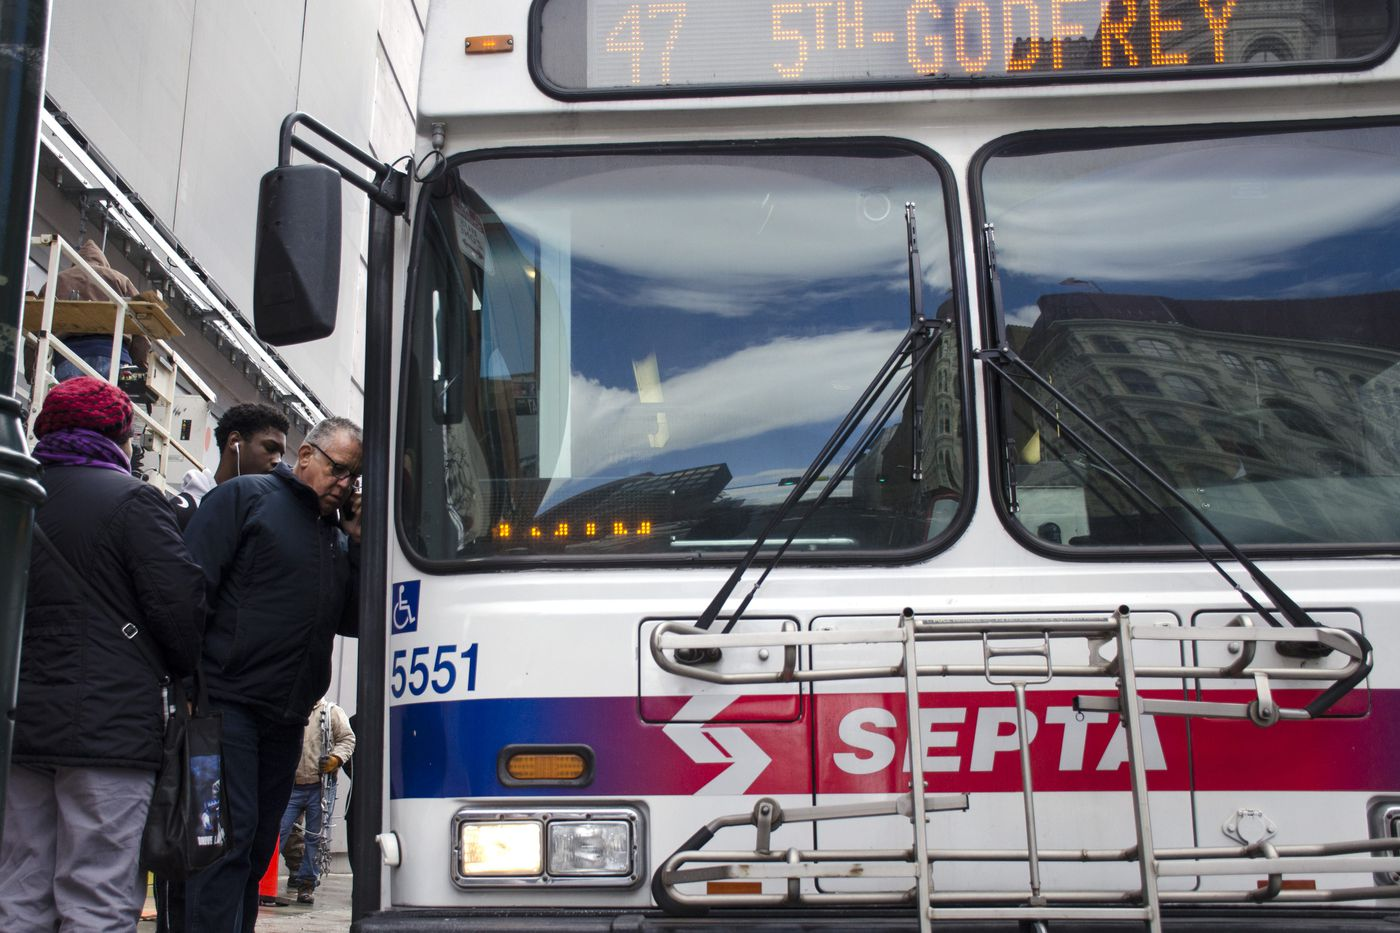 Why does SEPTA send pension cash so far from Philly?